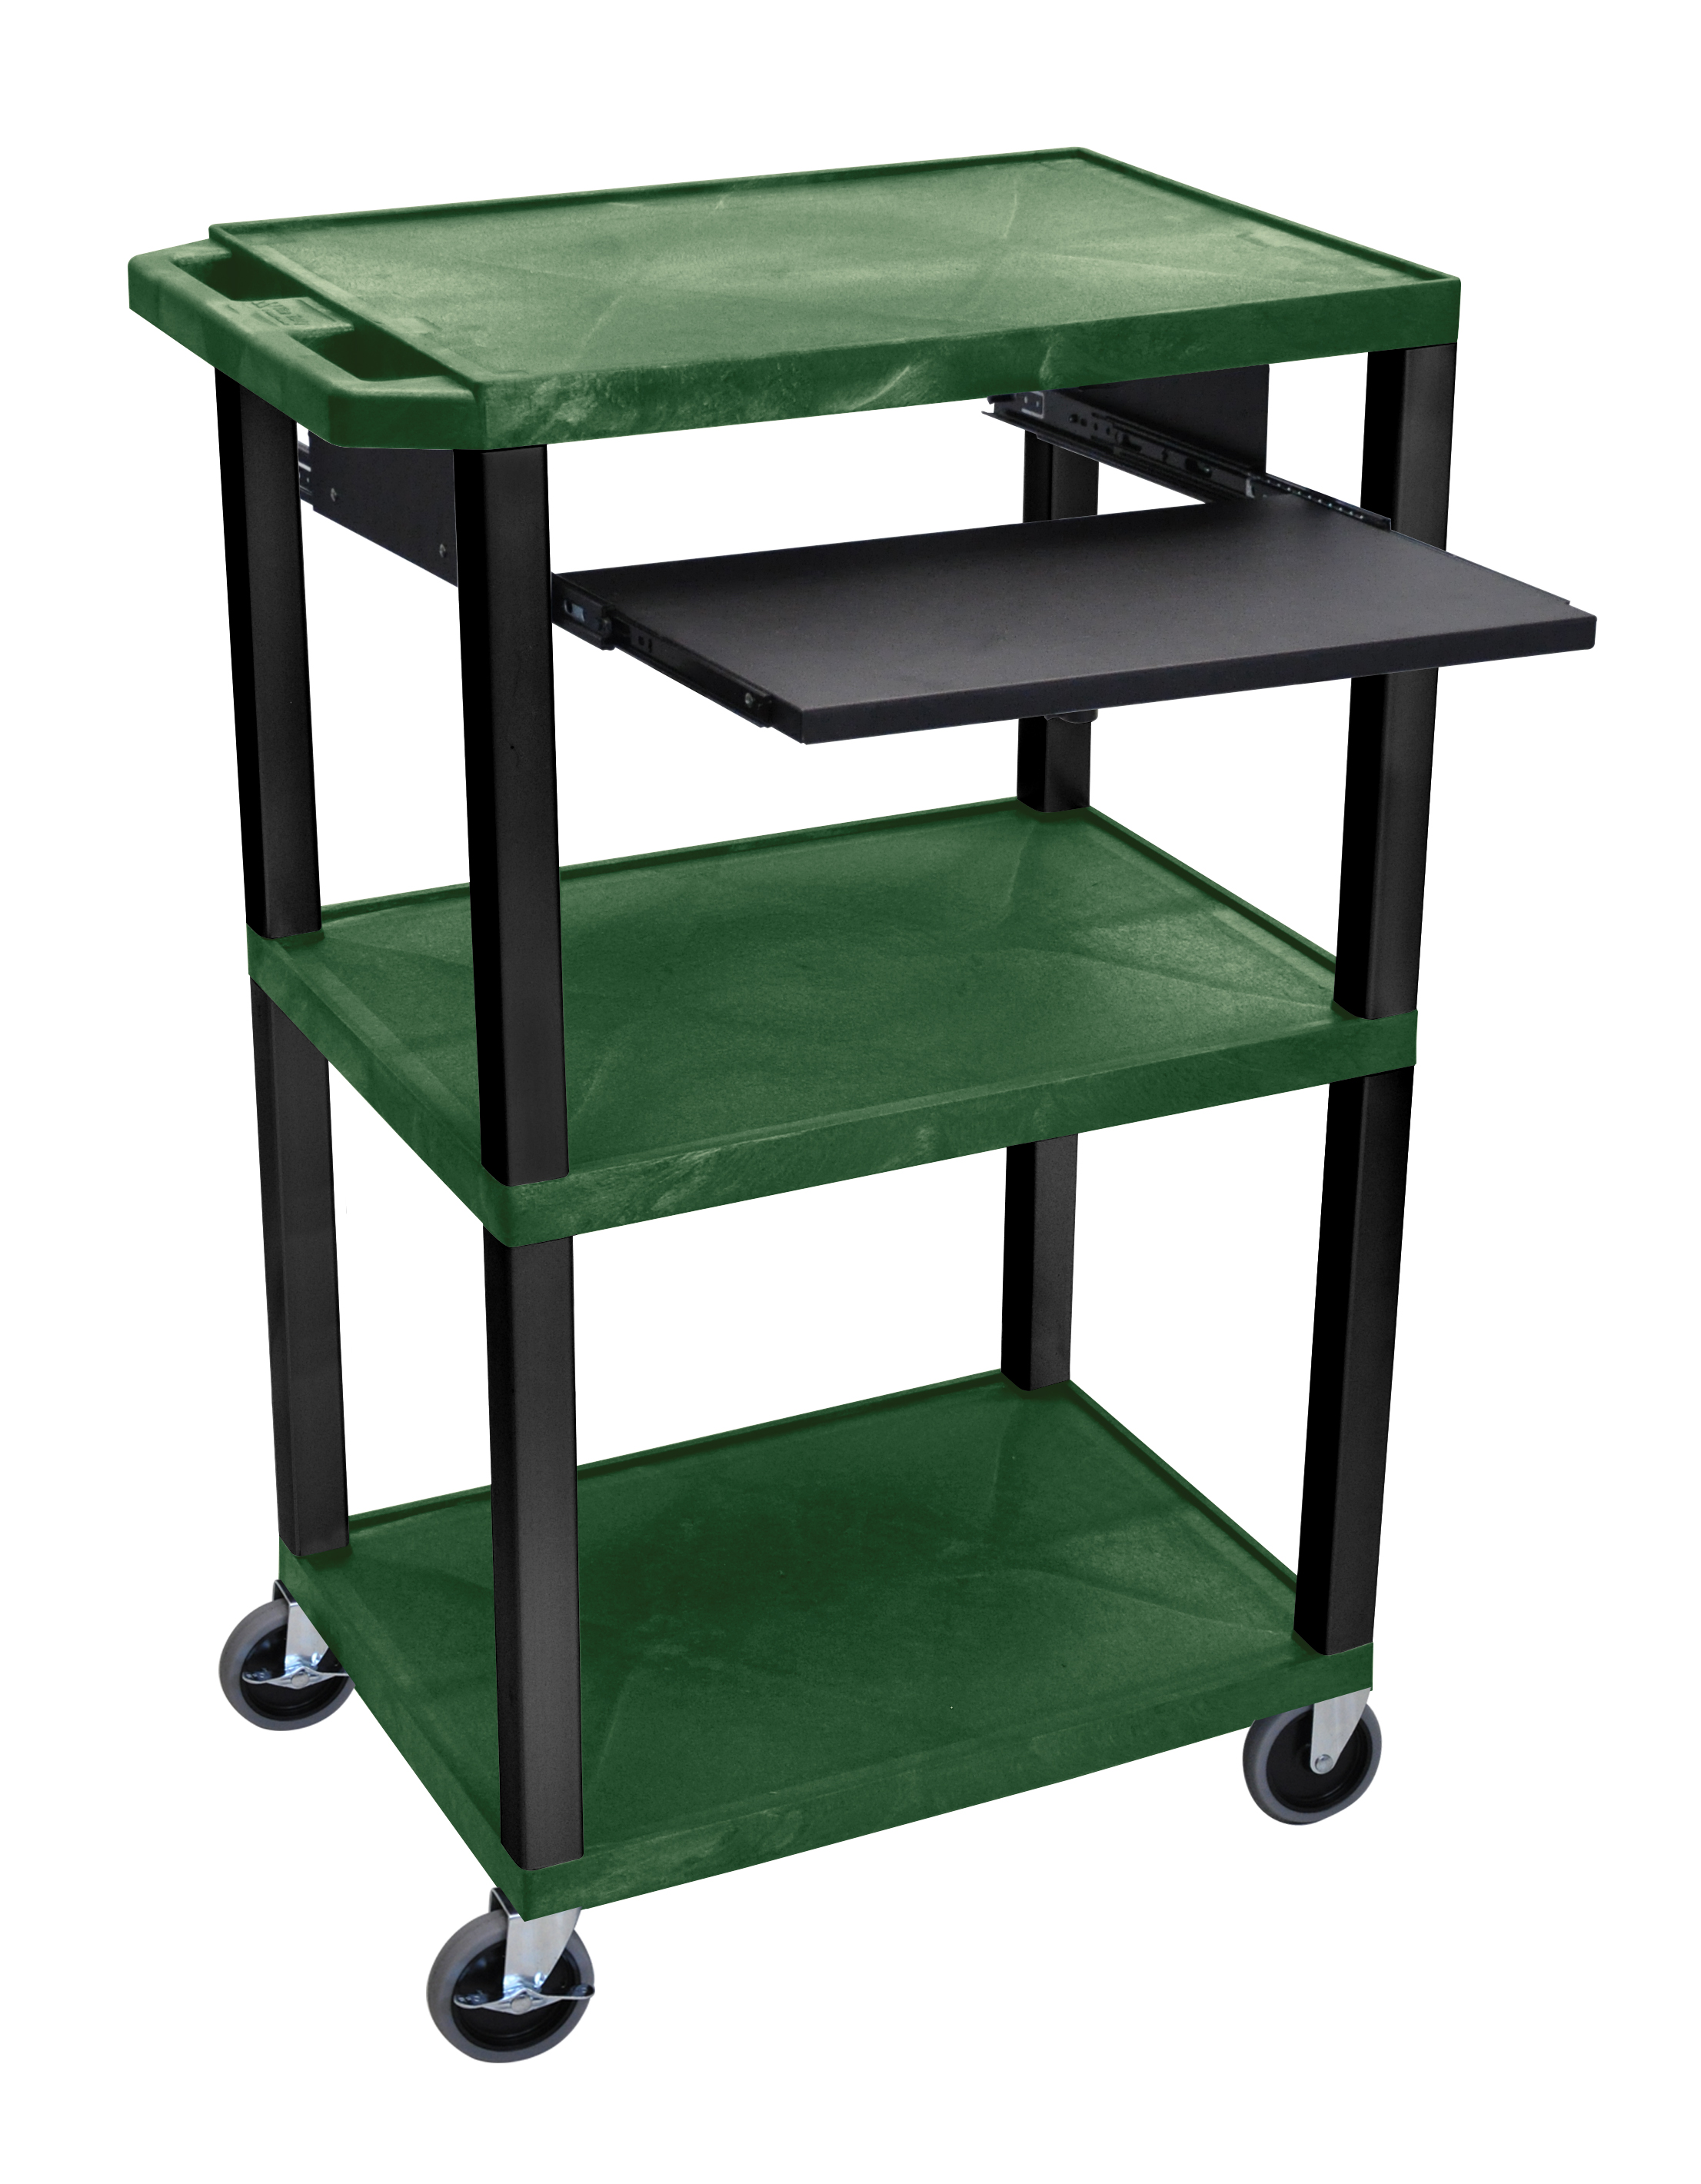 Offex Presentation Cart with Open Shelves and Pull Out Tray Hunter Green and Black